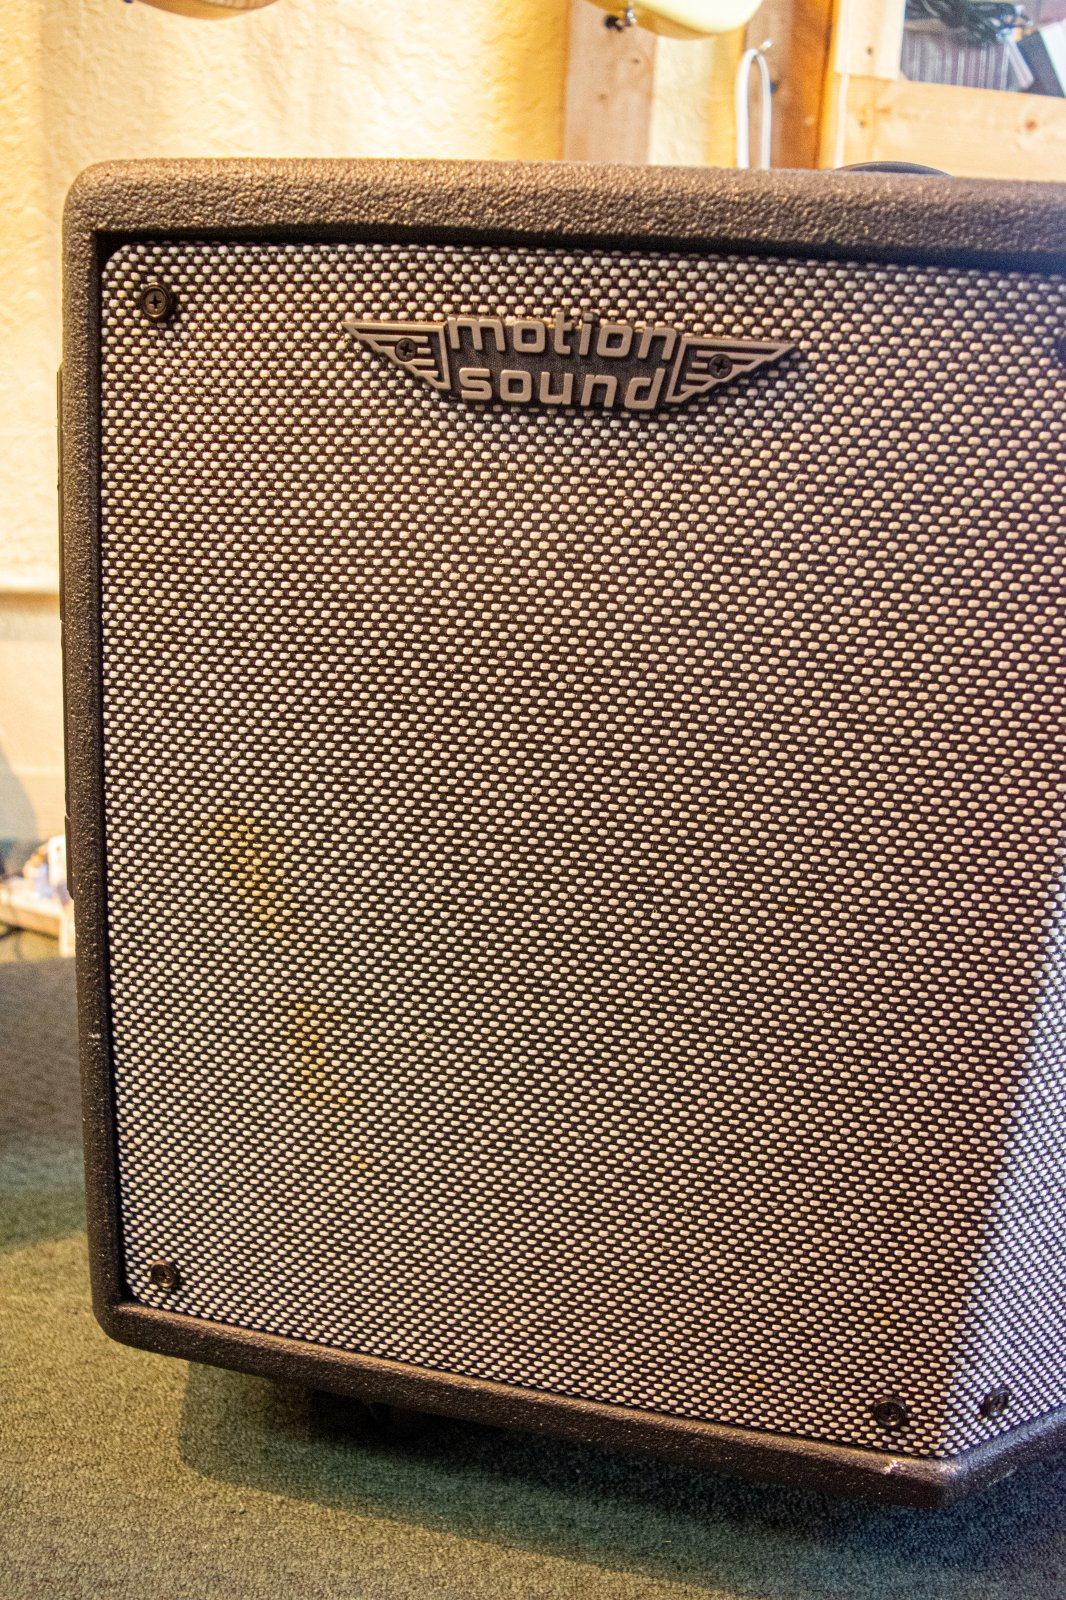 Motion Sound Keyboard Amp KP-500SN w/cover